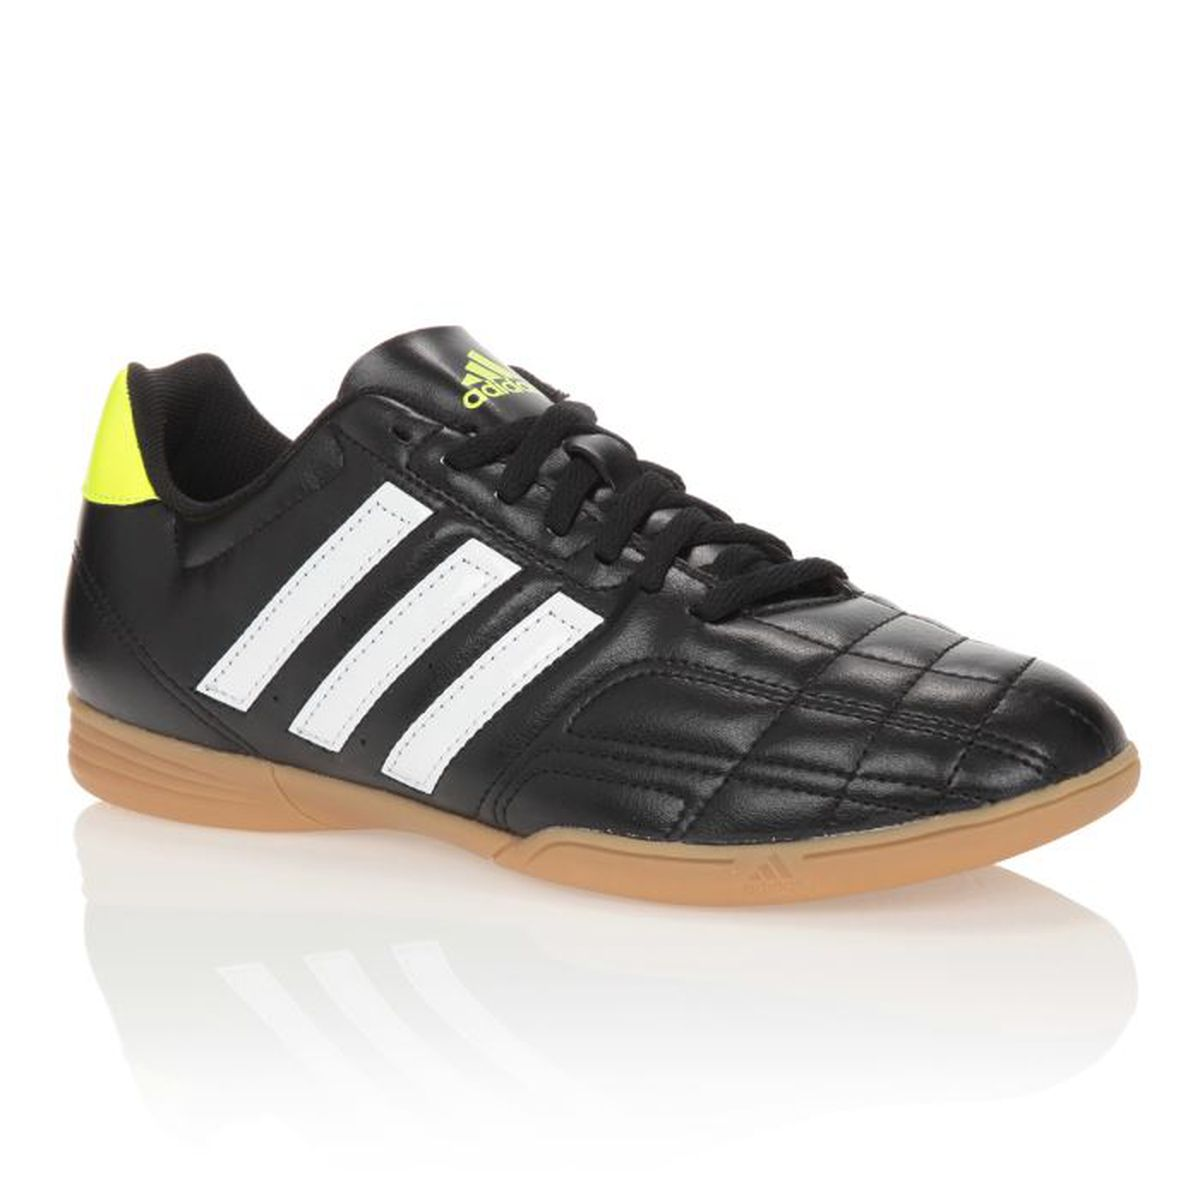 Goletto Adidas Iv Chaussures Homme Foot Indoor Prix Pas Cher Y6gy7fb